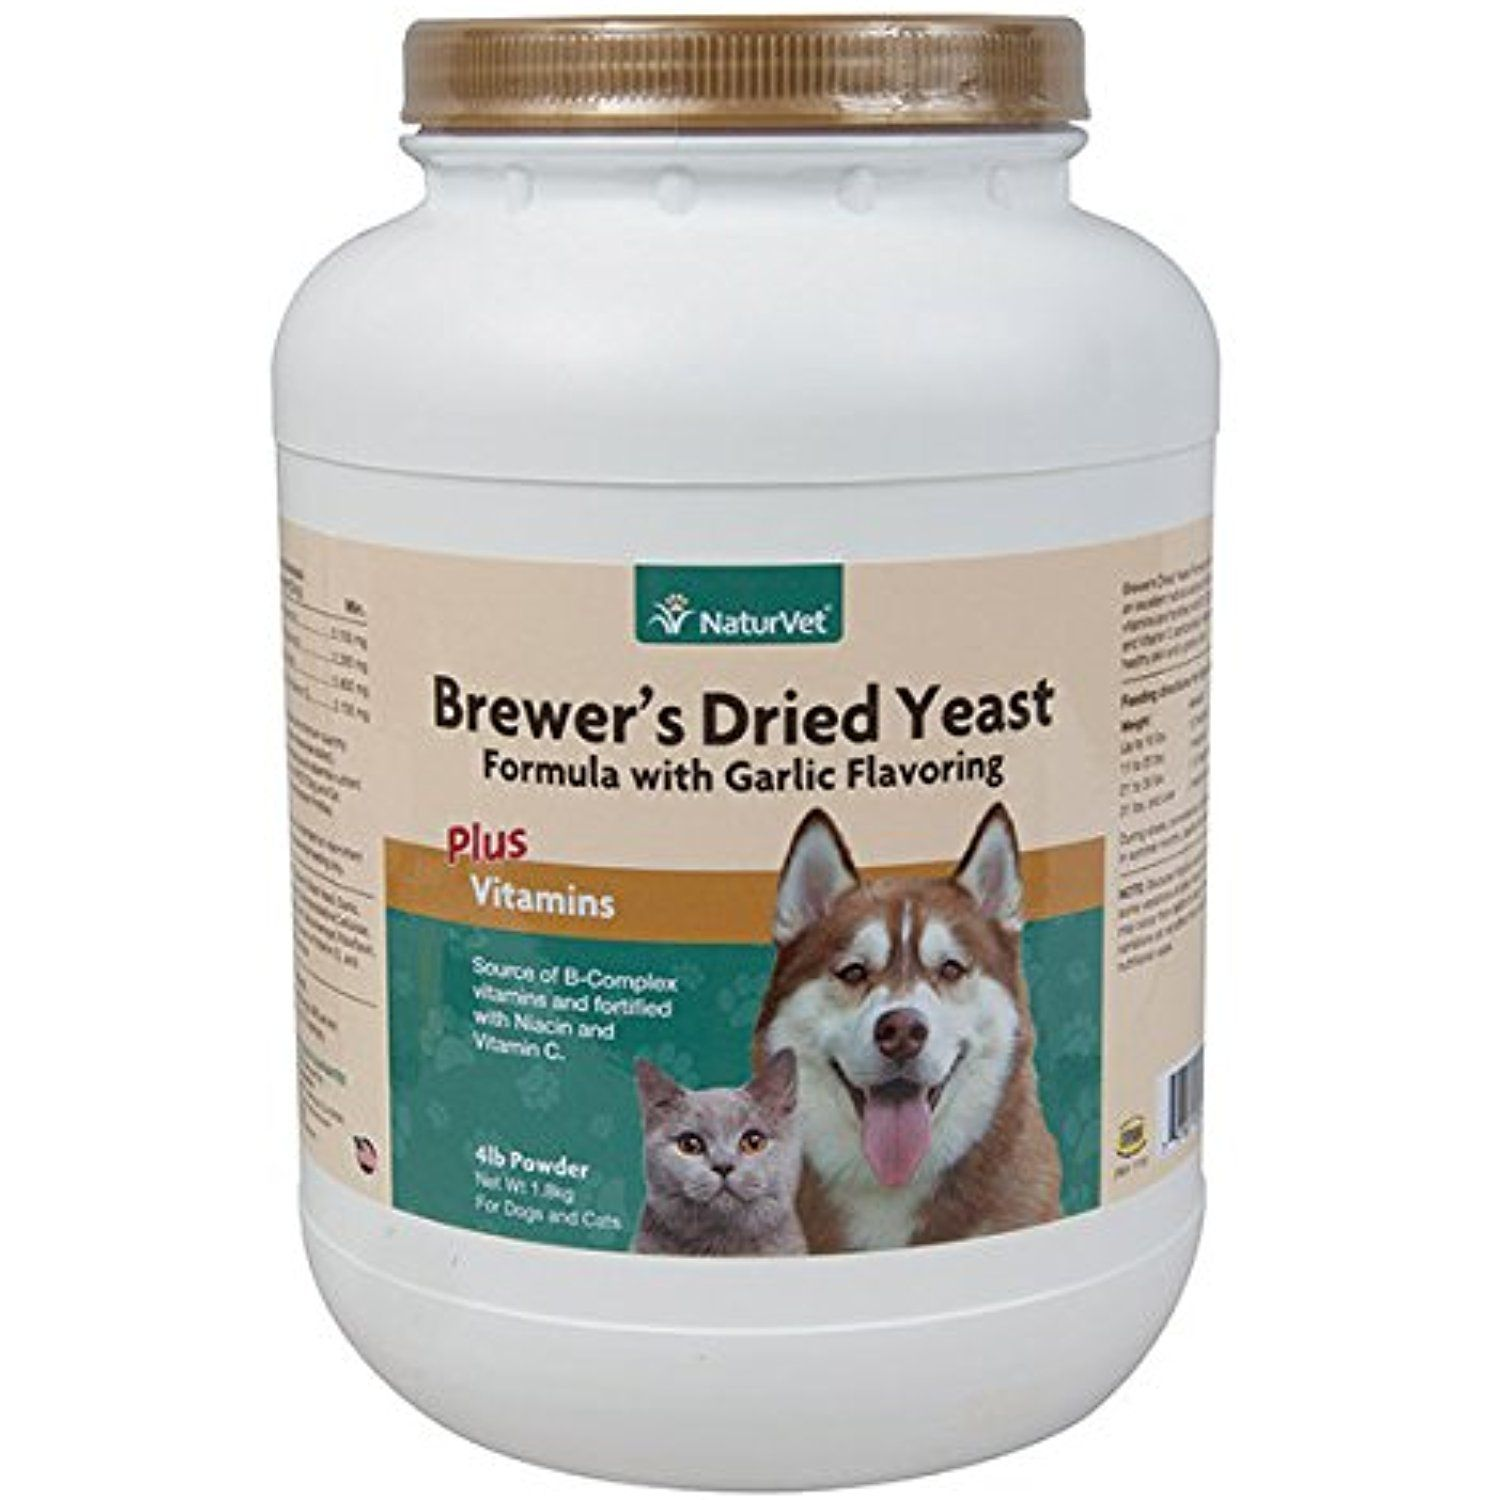 Brewers Yeast Fortified With Garlic 4 Pounds Powder To Have More Info Could Be Found At The Image Url This Is Brewers Yeast Dry Yeast Vitamin C For Dogs